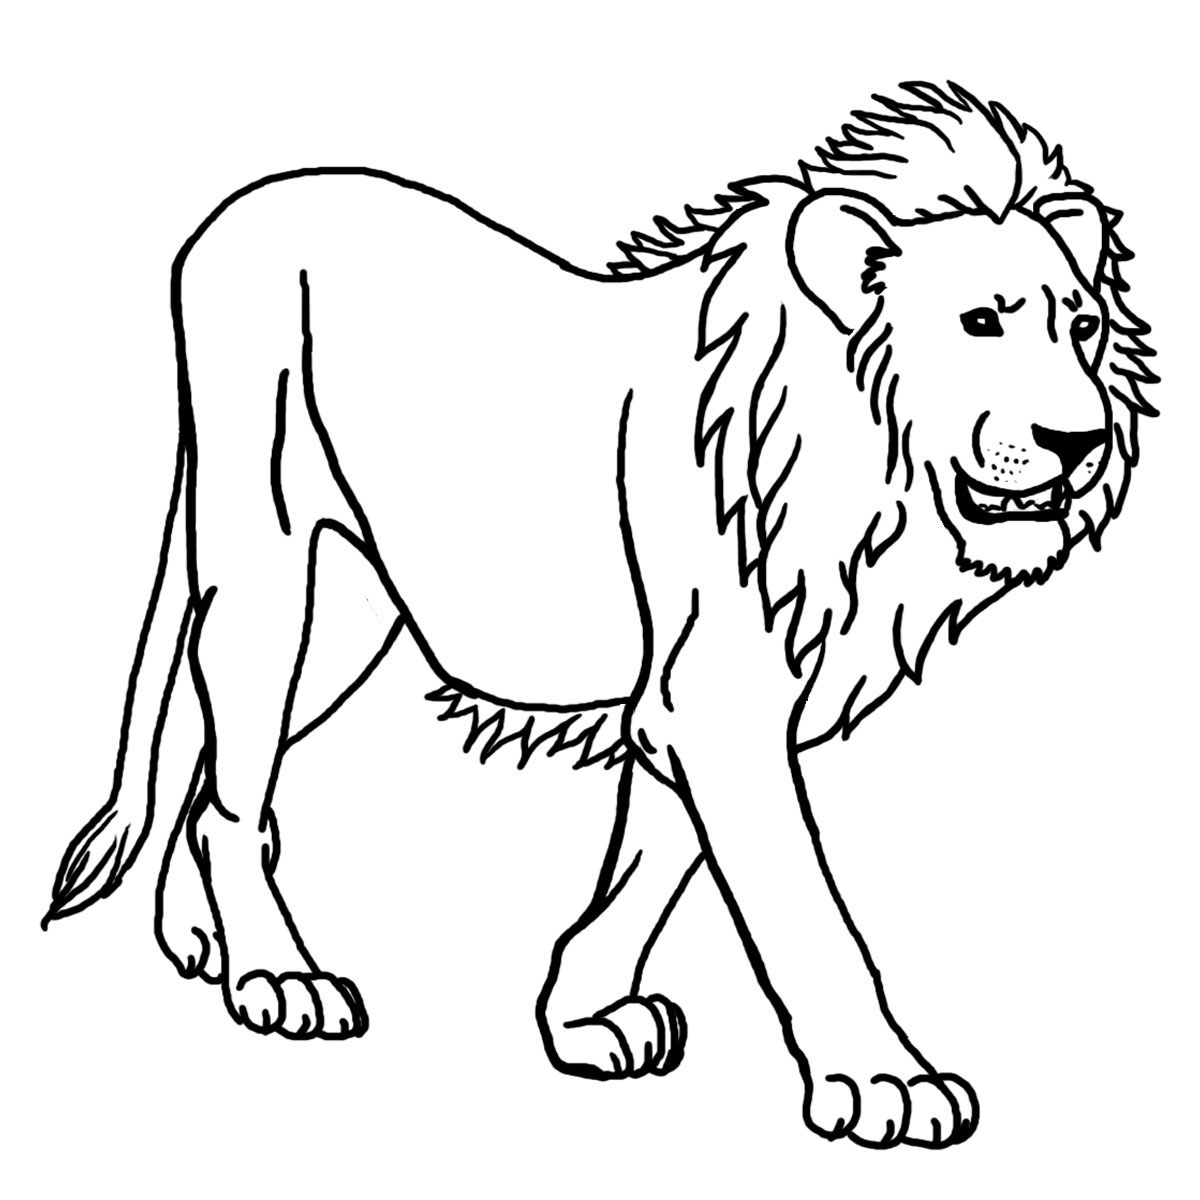 coloring page of a lion lion free to color for children lion kids coloring pages a of page lion coloring